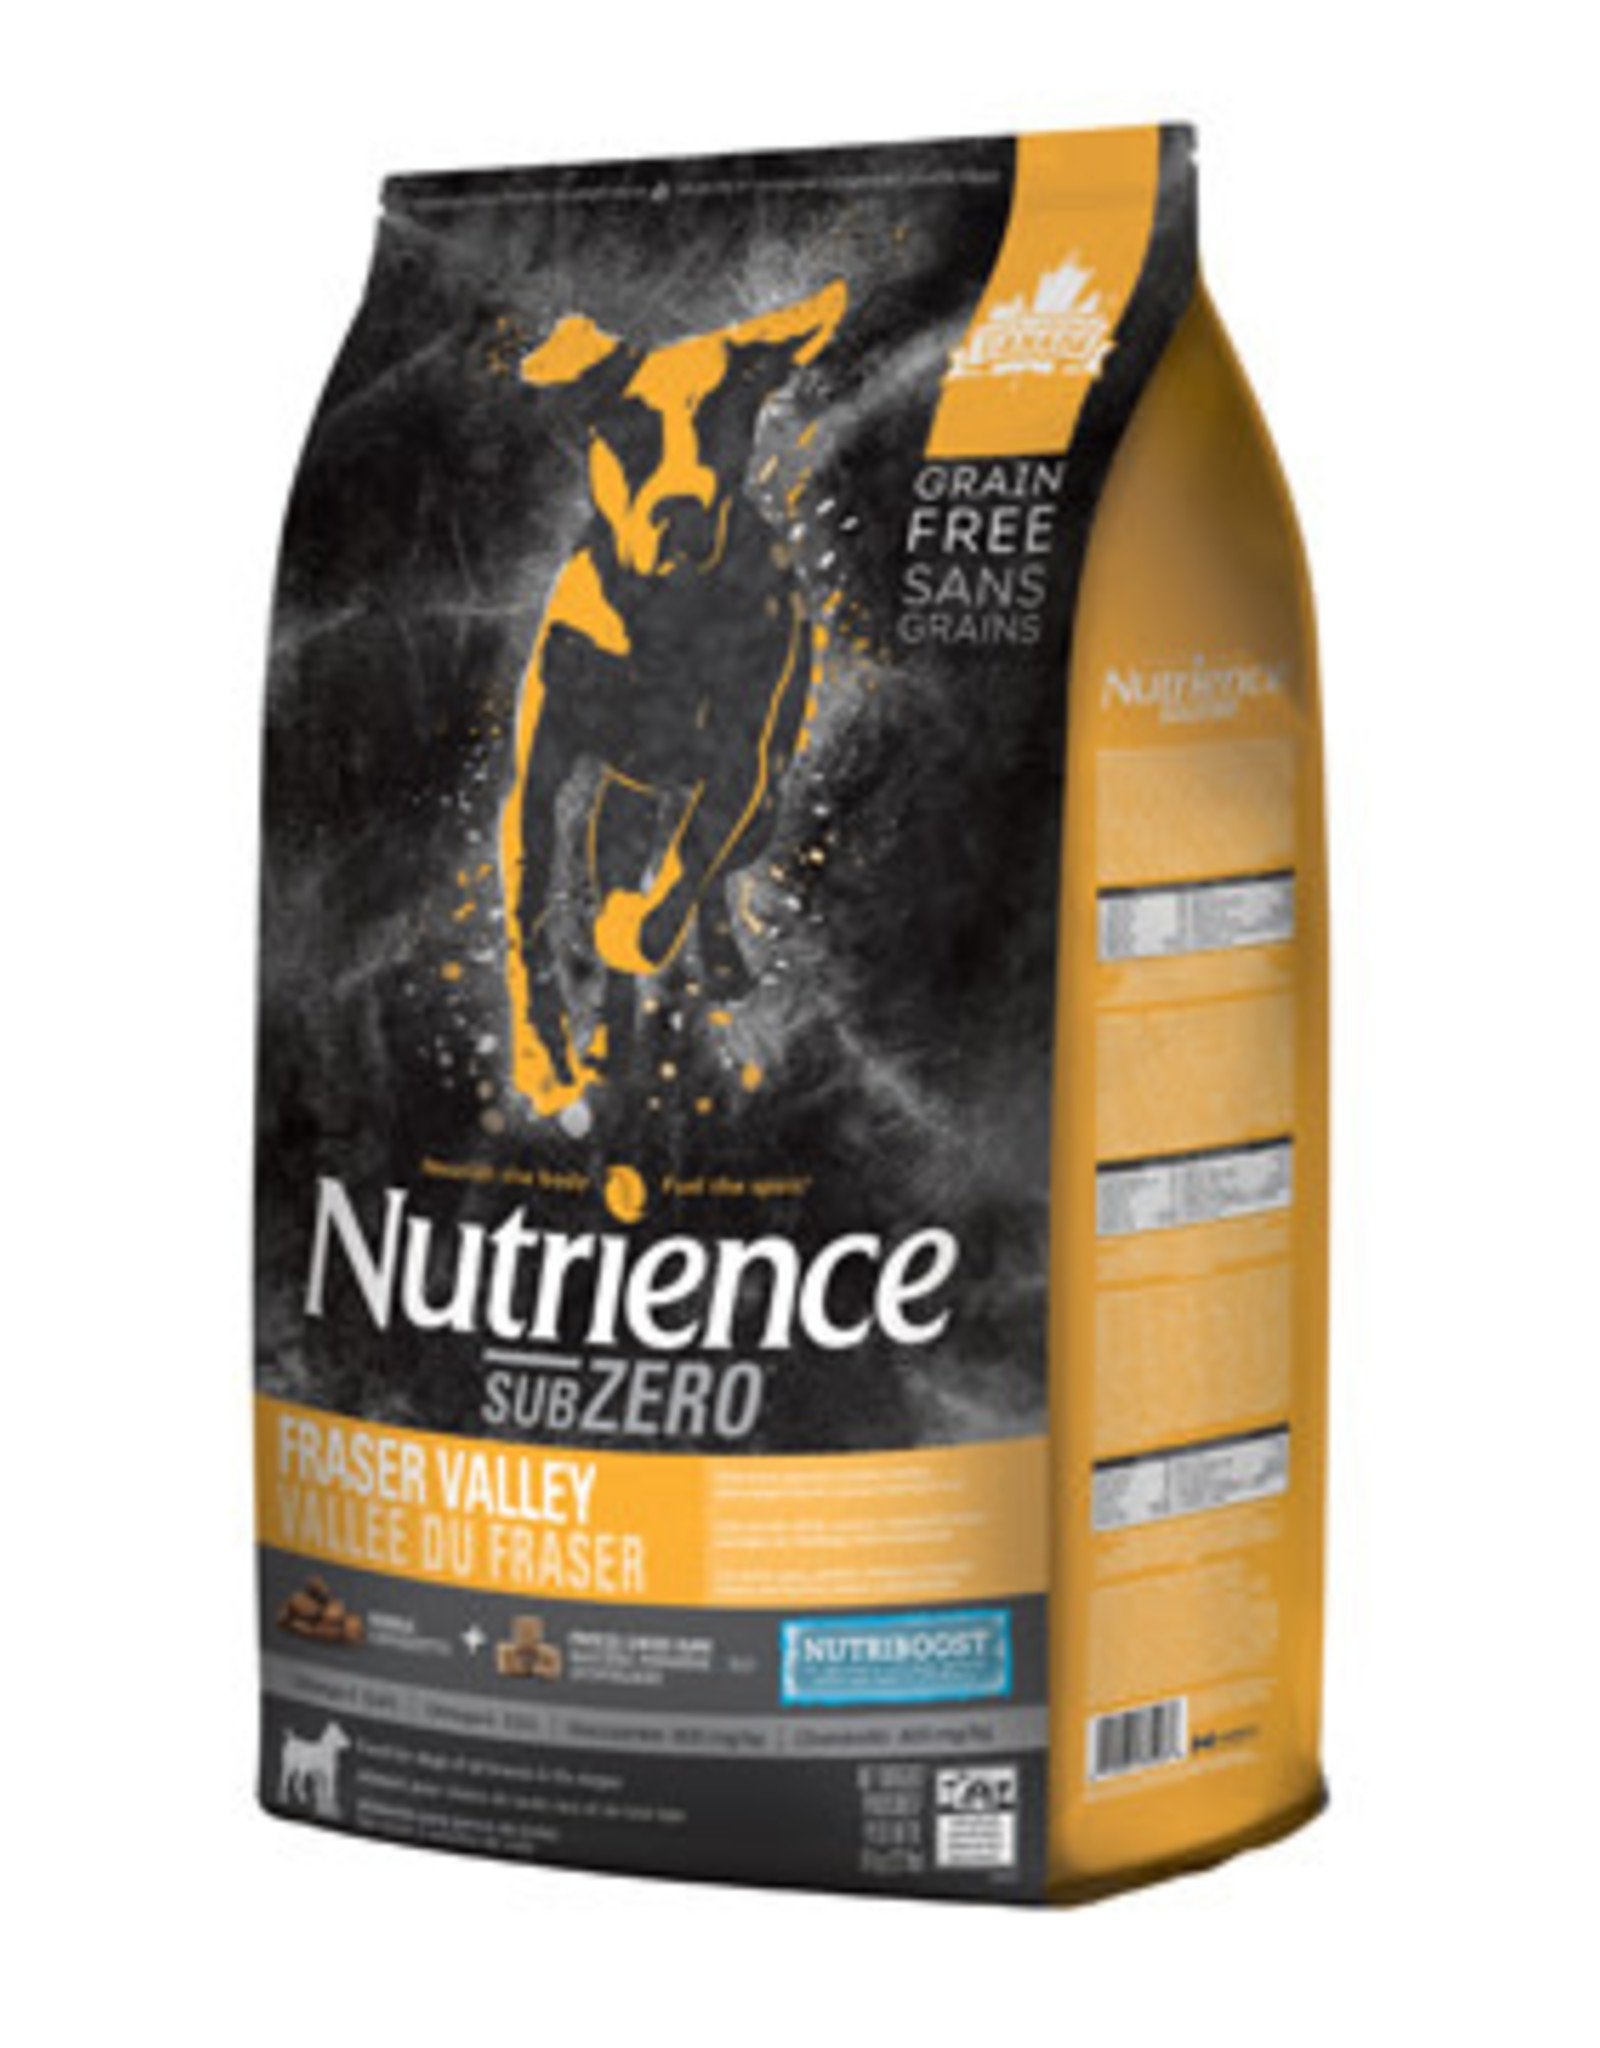 NUTRIENCE Nutrience Grain Free Subzero for Dogs - Fraser Valley - 10 kg (22 lbs)